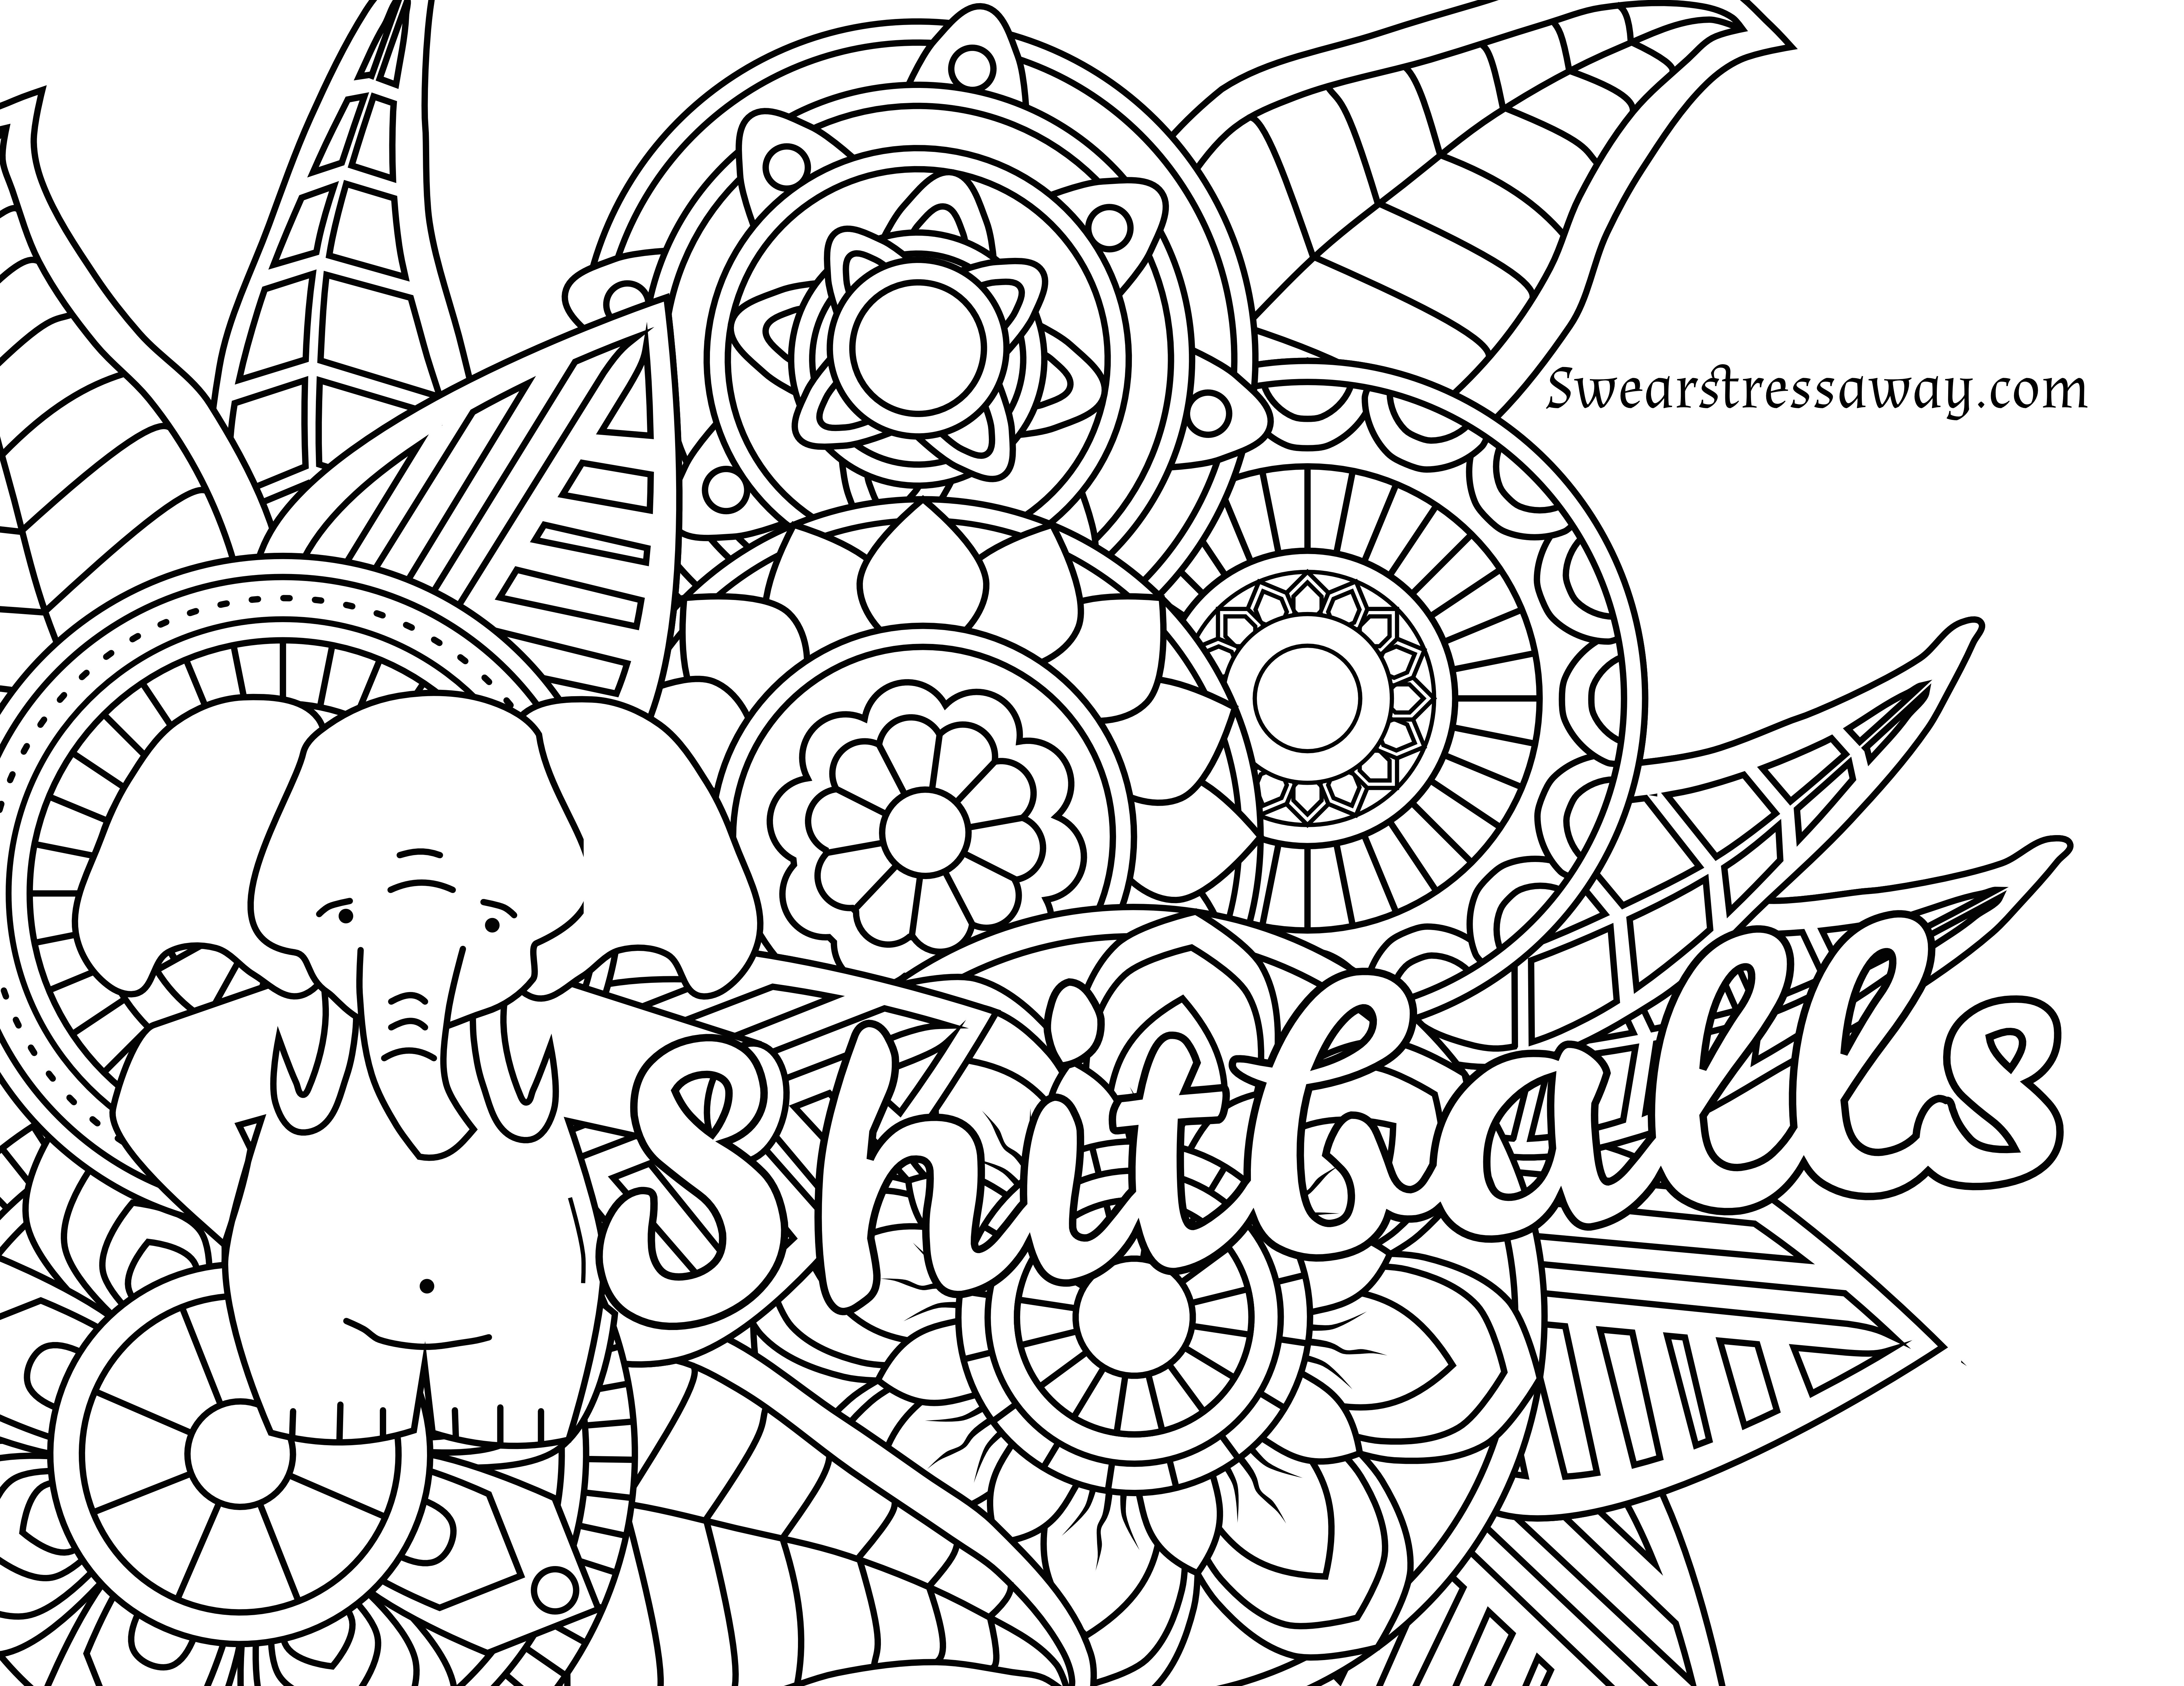 Christmas Coloring Pages For Intermediate Students With Downloadable Free That Are Printable Sheets